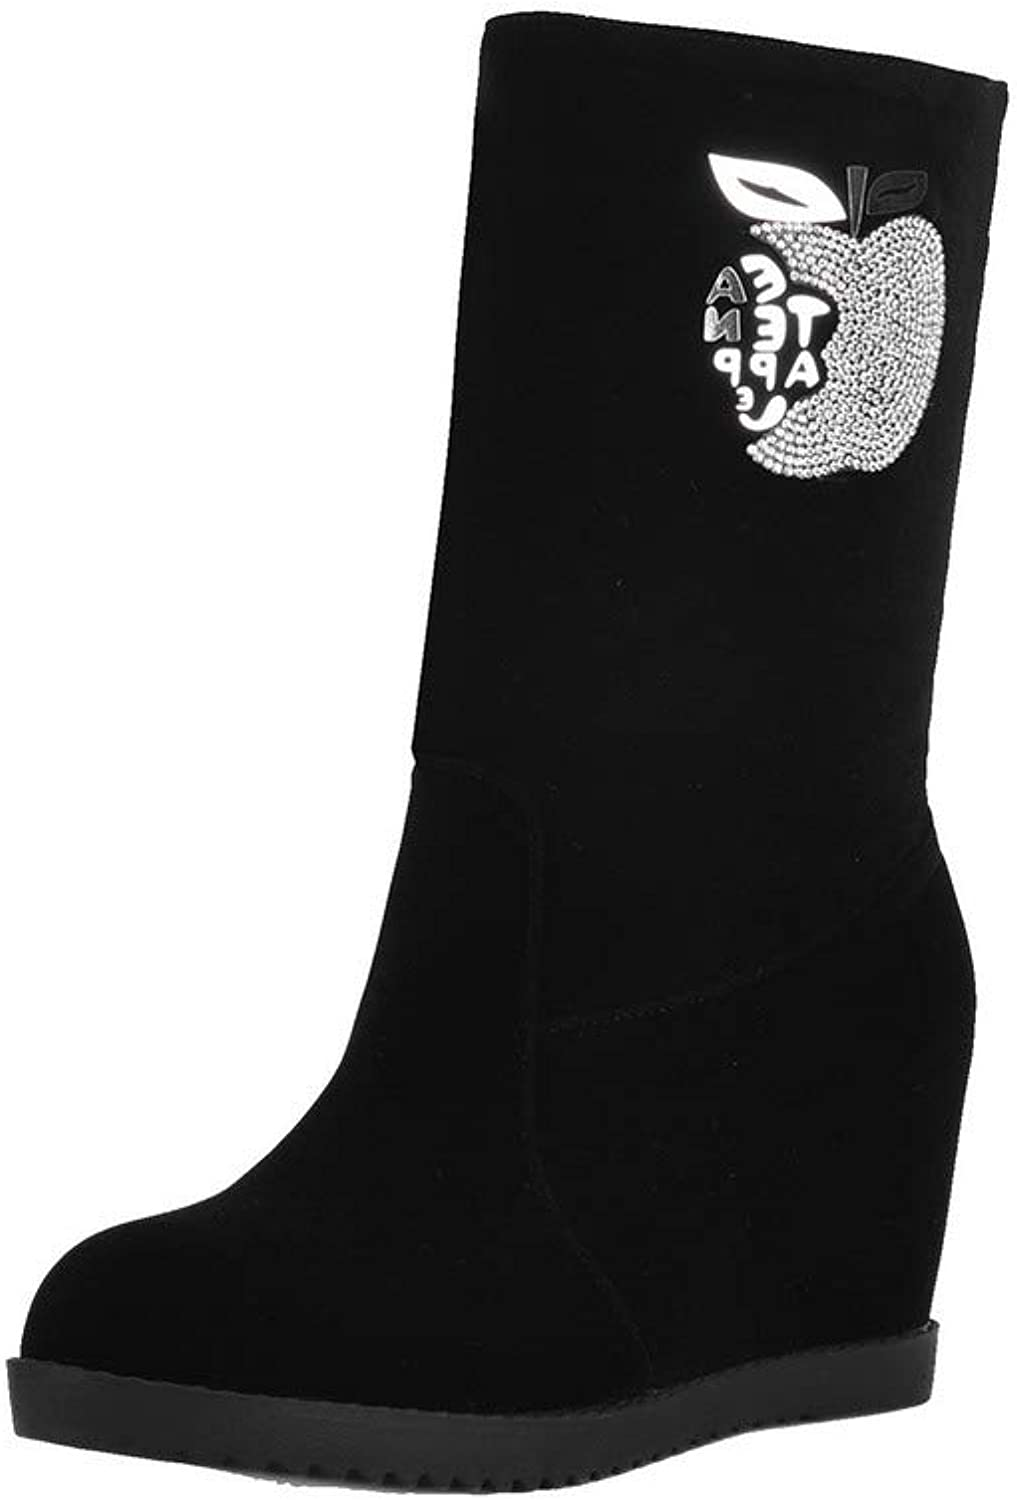 WeiPoot Women's Kitten-Heels Frosted Low-Top Assorted color Pull-On Boots, EGHXH108850